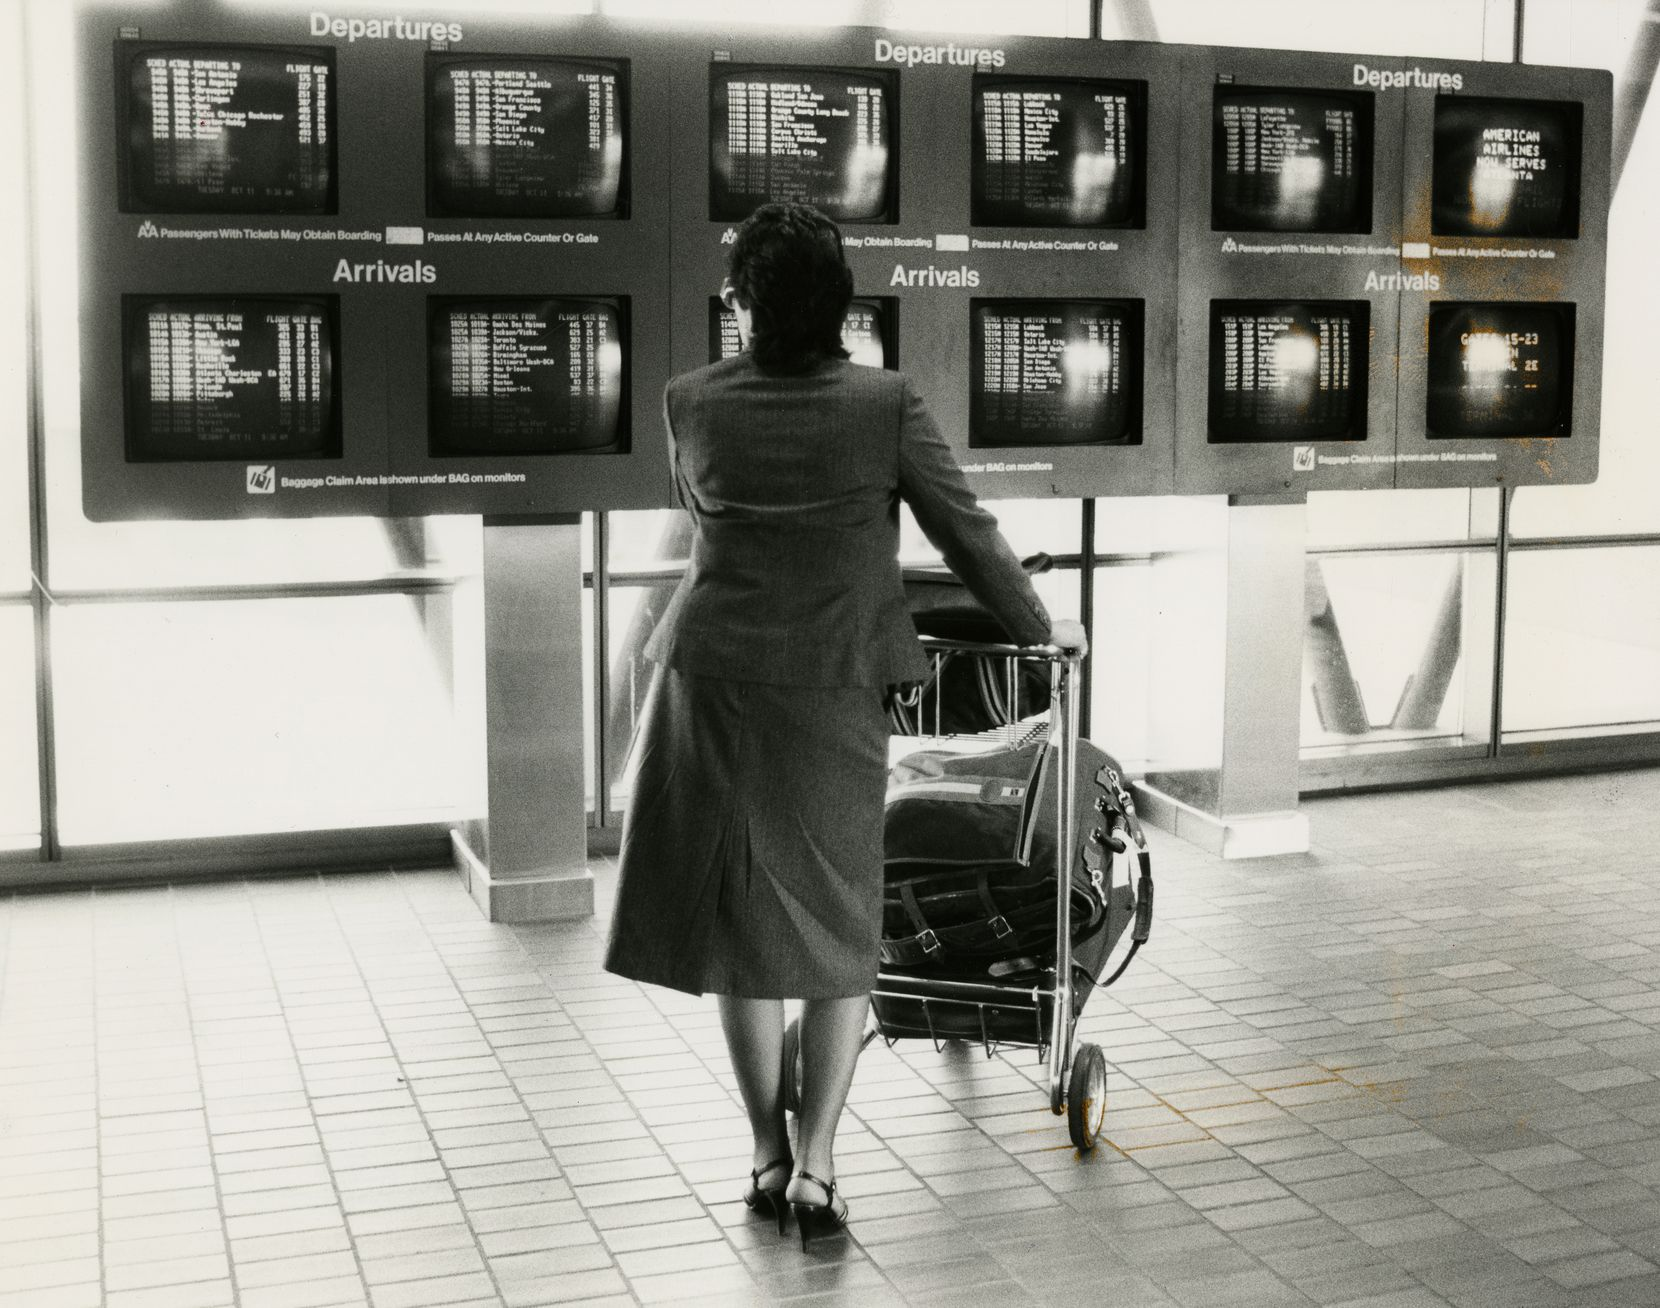 A passenger checks arrivals and departures at DFW International Airport in 1981.